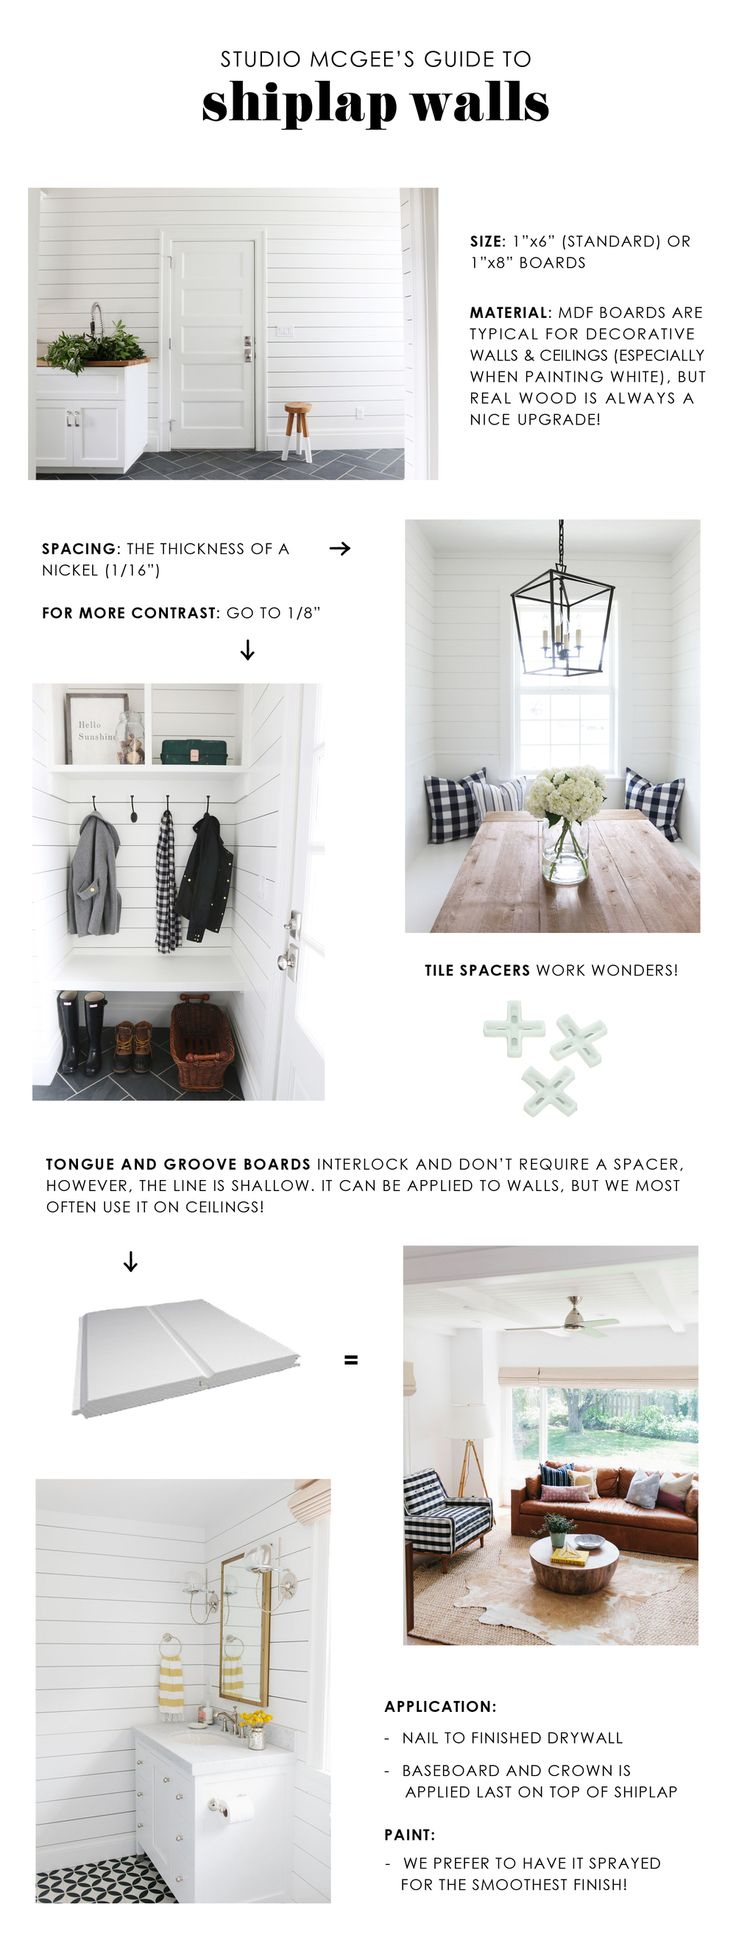 Studio McGee's Guide to Shiplap Walls